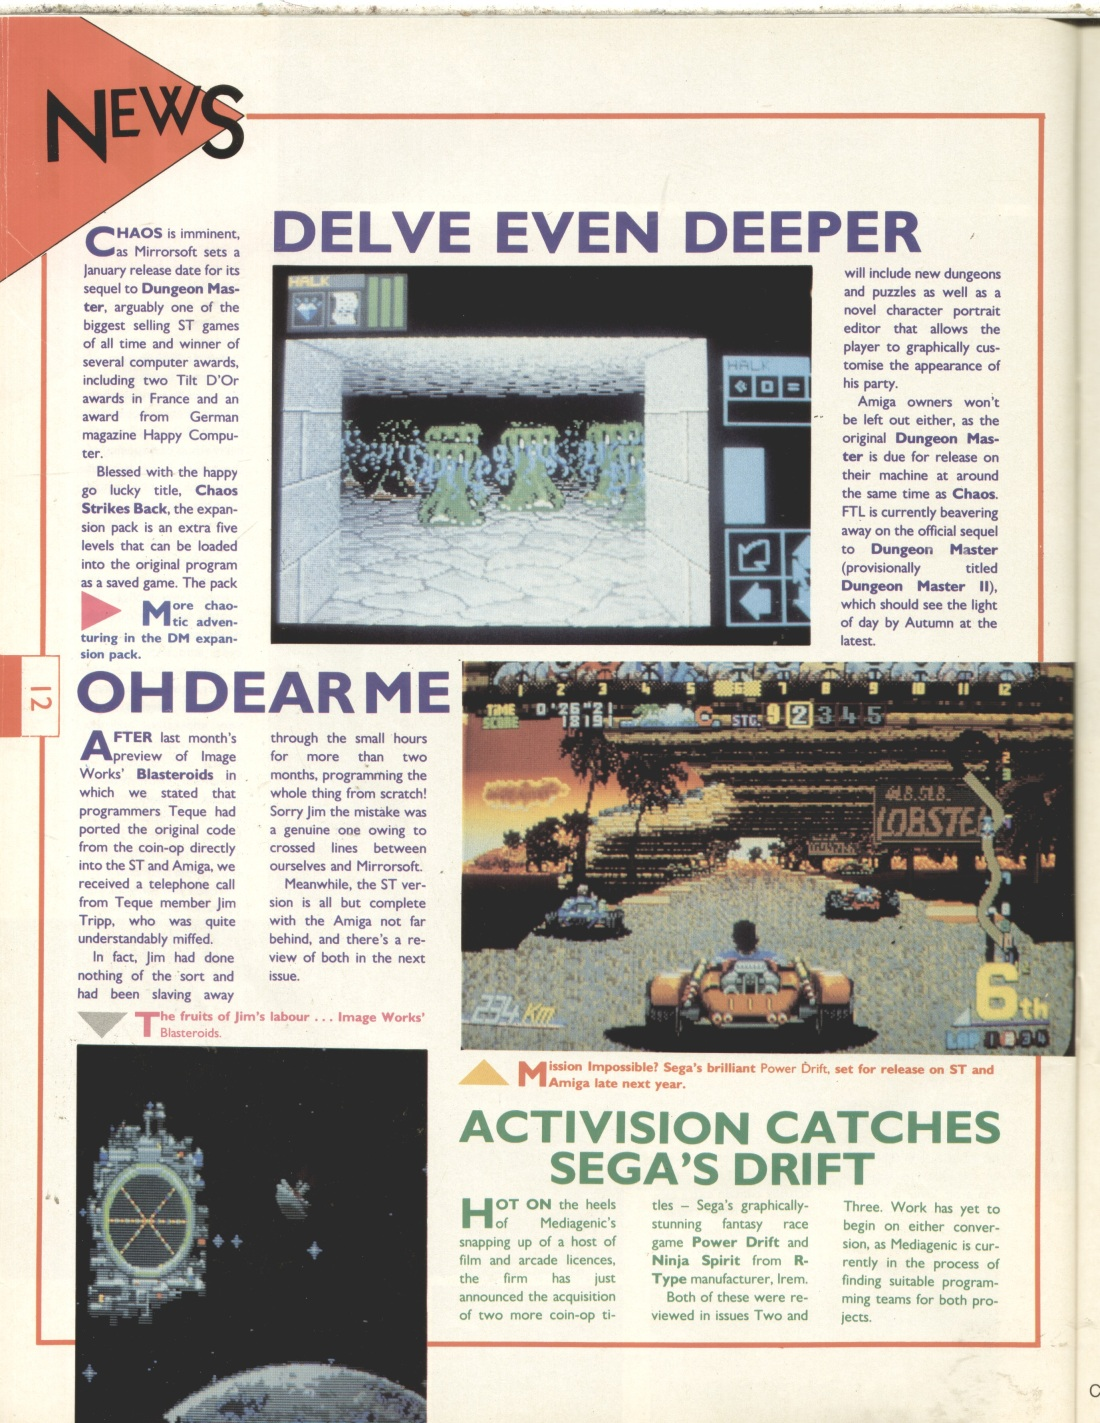 Chaos Strikes Back for Amiga Preview published in British magazine 'The One for 16-bits games', Issue #4 January 1989, Page 12